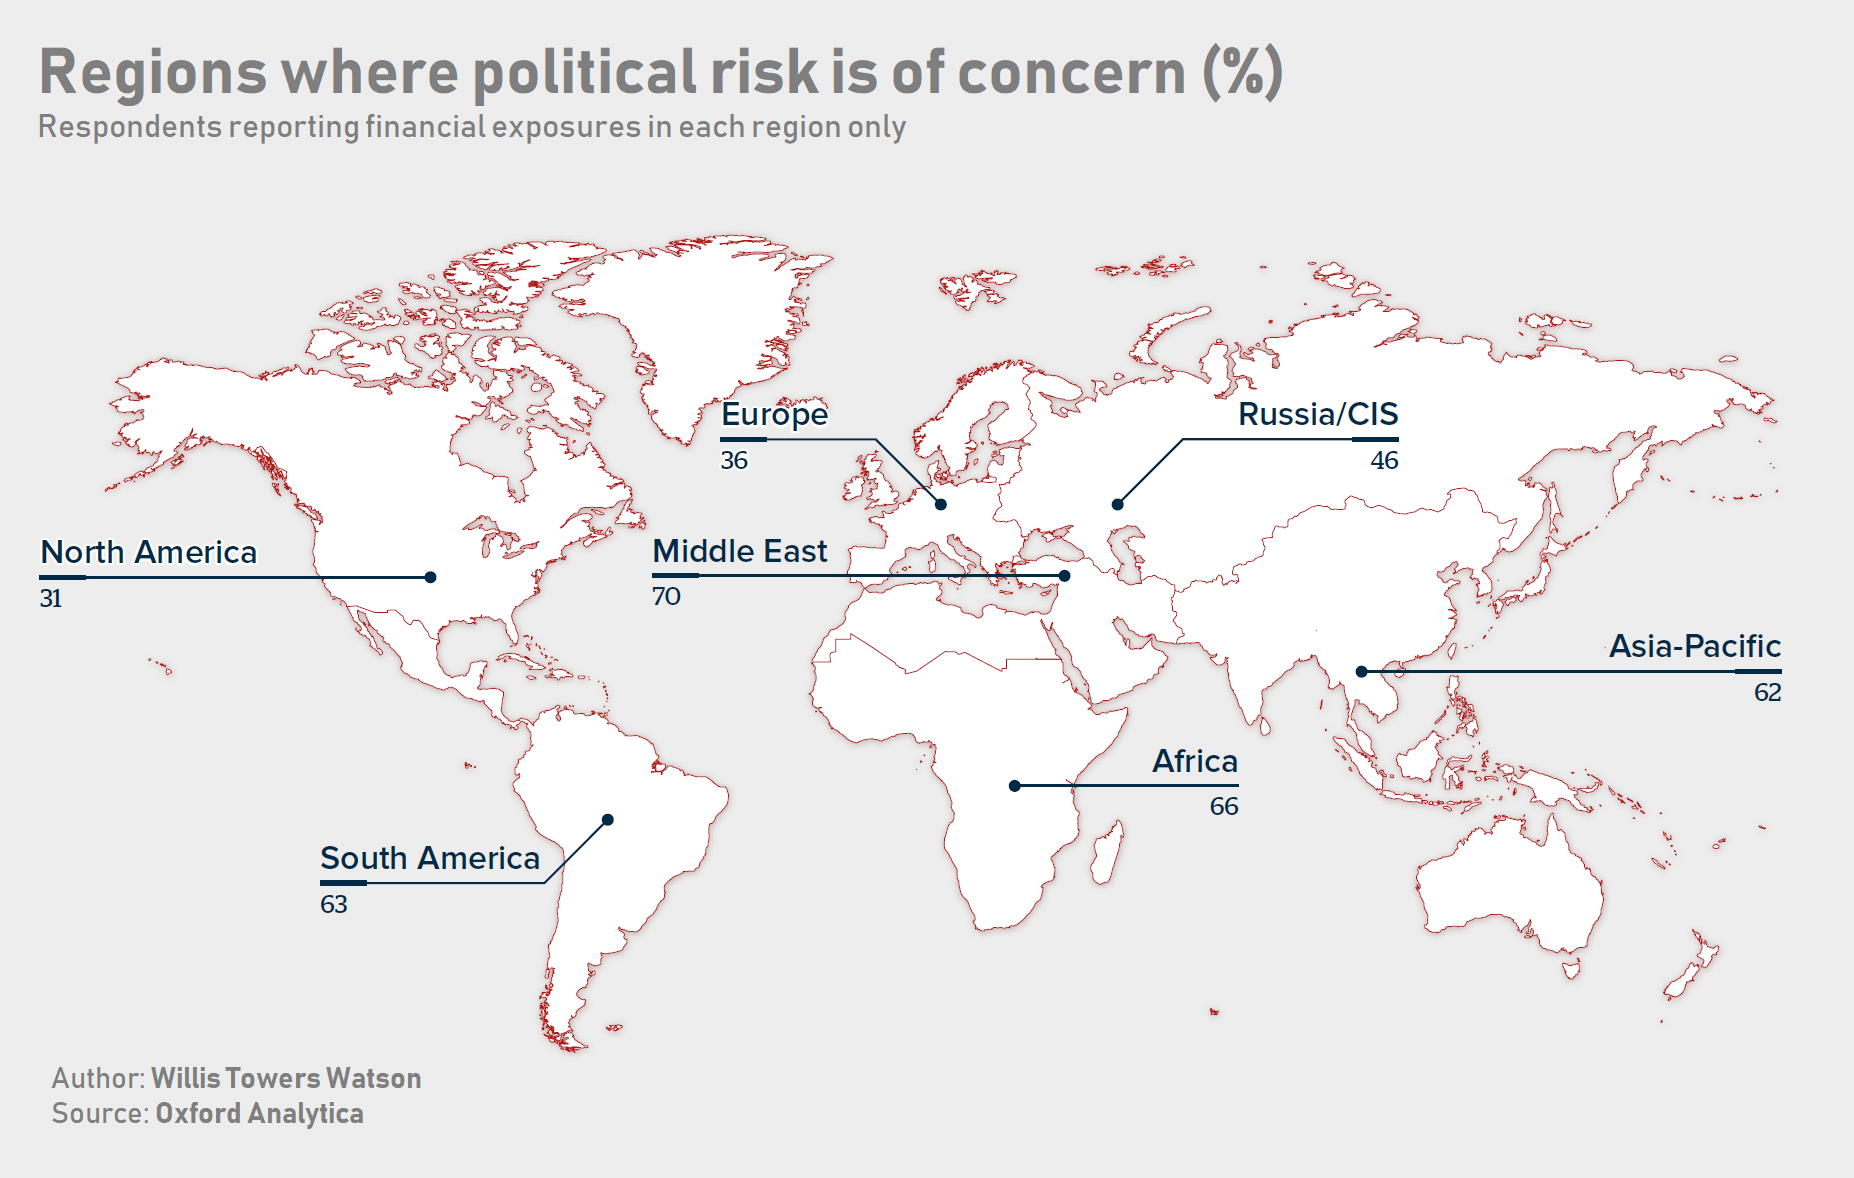 WTW 2019 political risk map